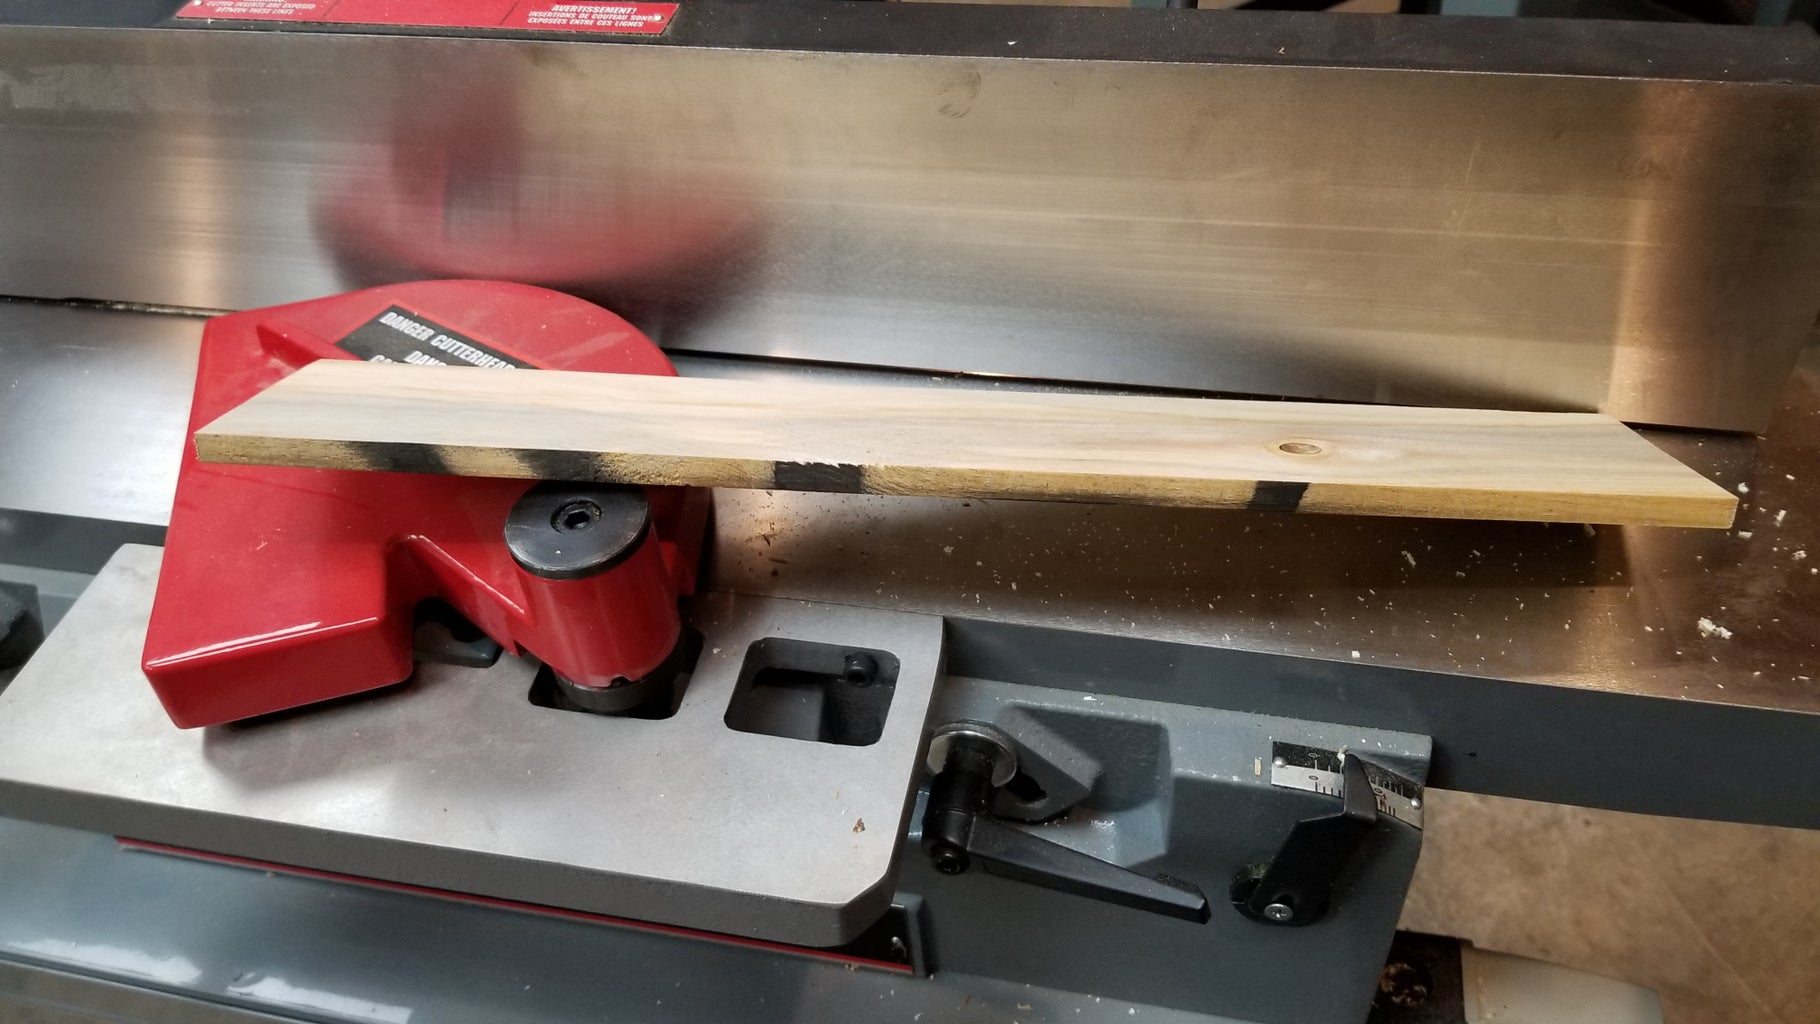 The Jointer